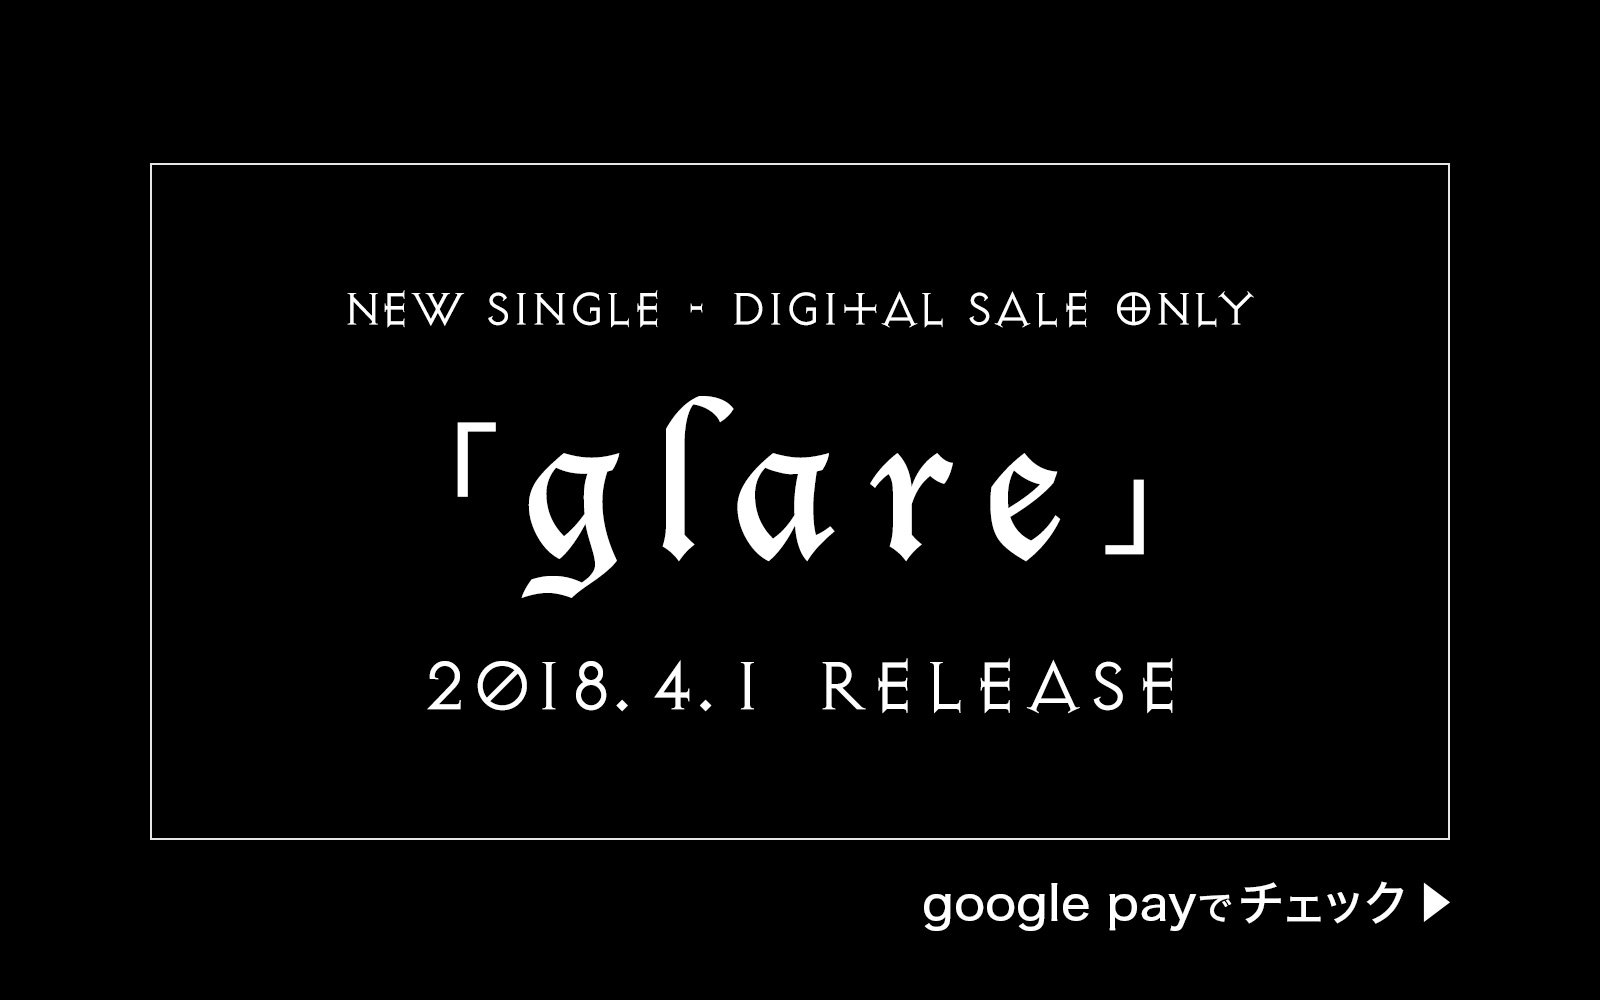 OUTERHAVEN - GLARE - by google pay